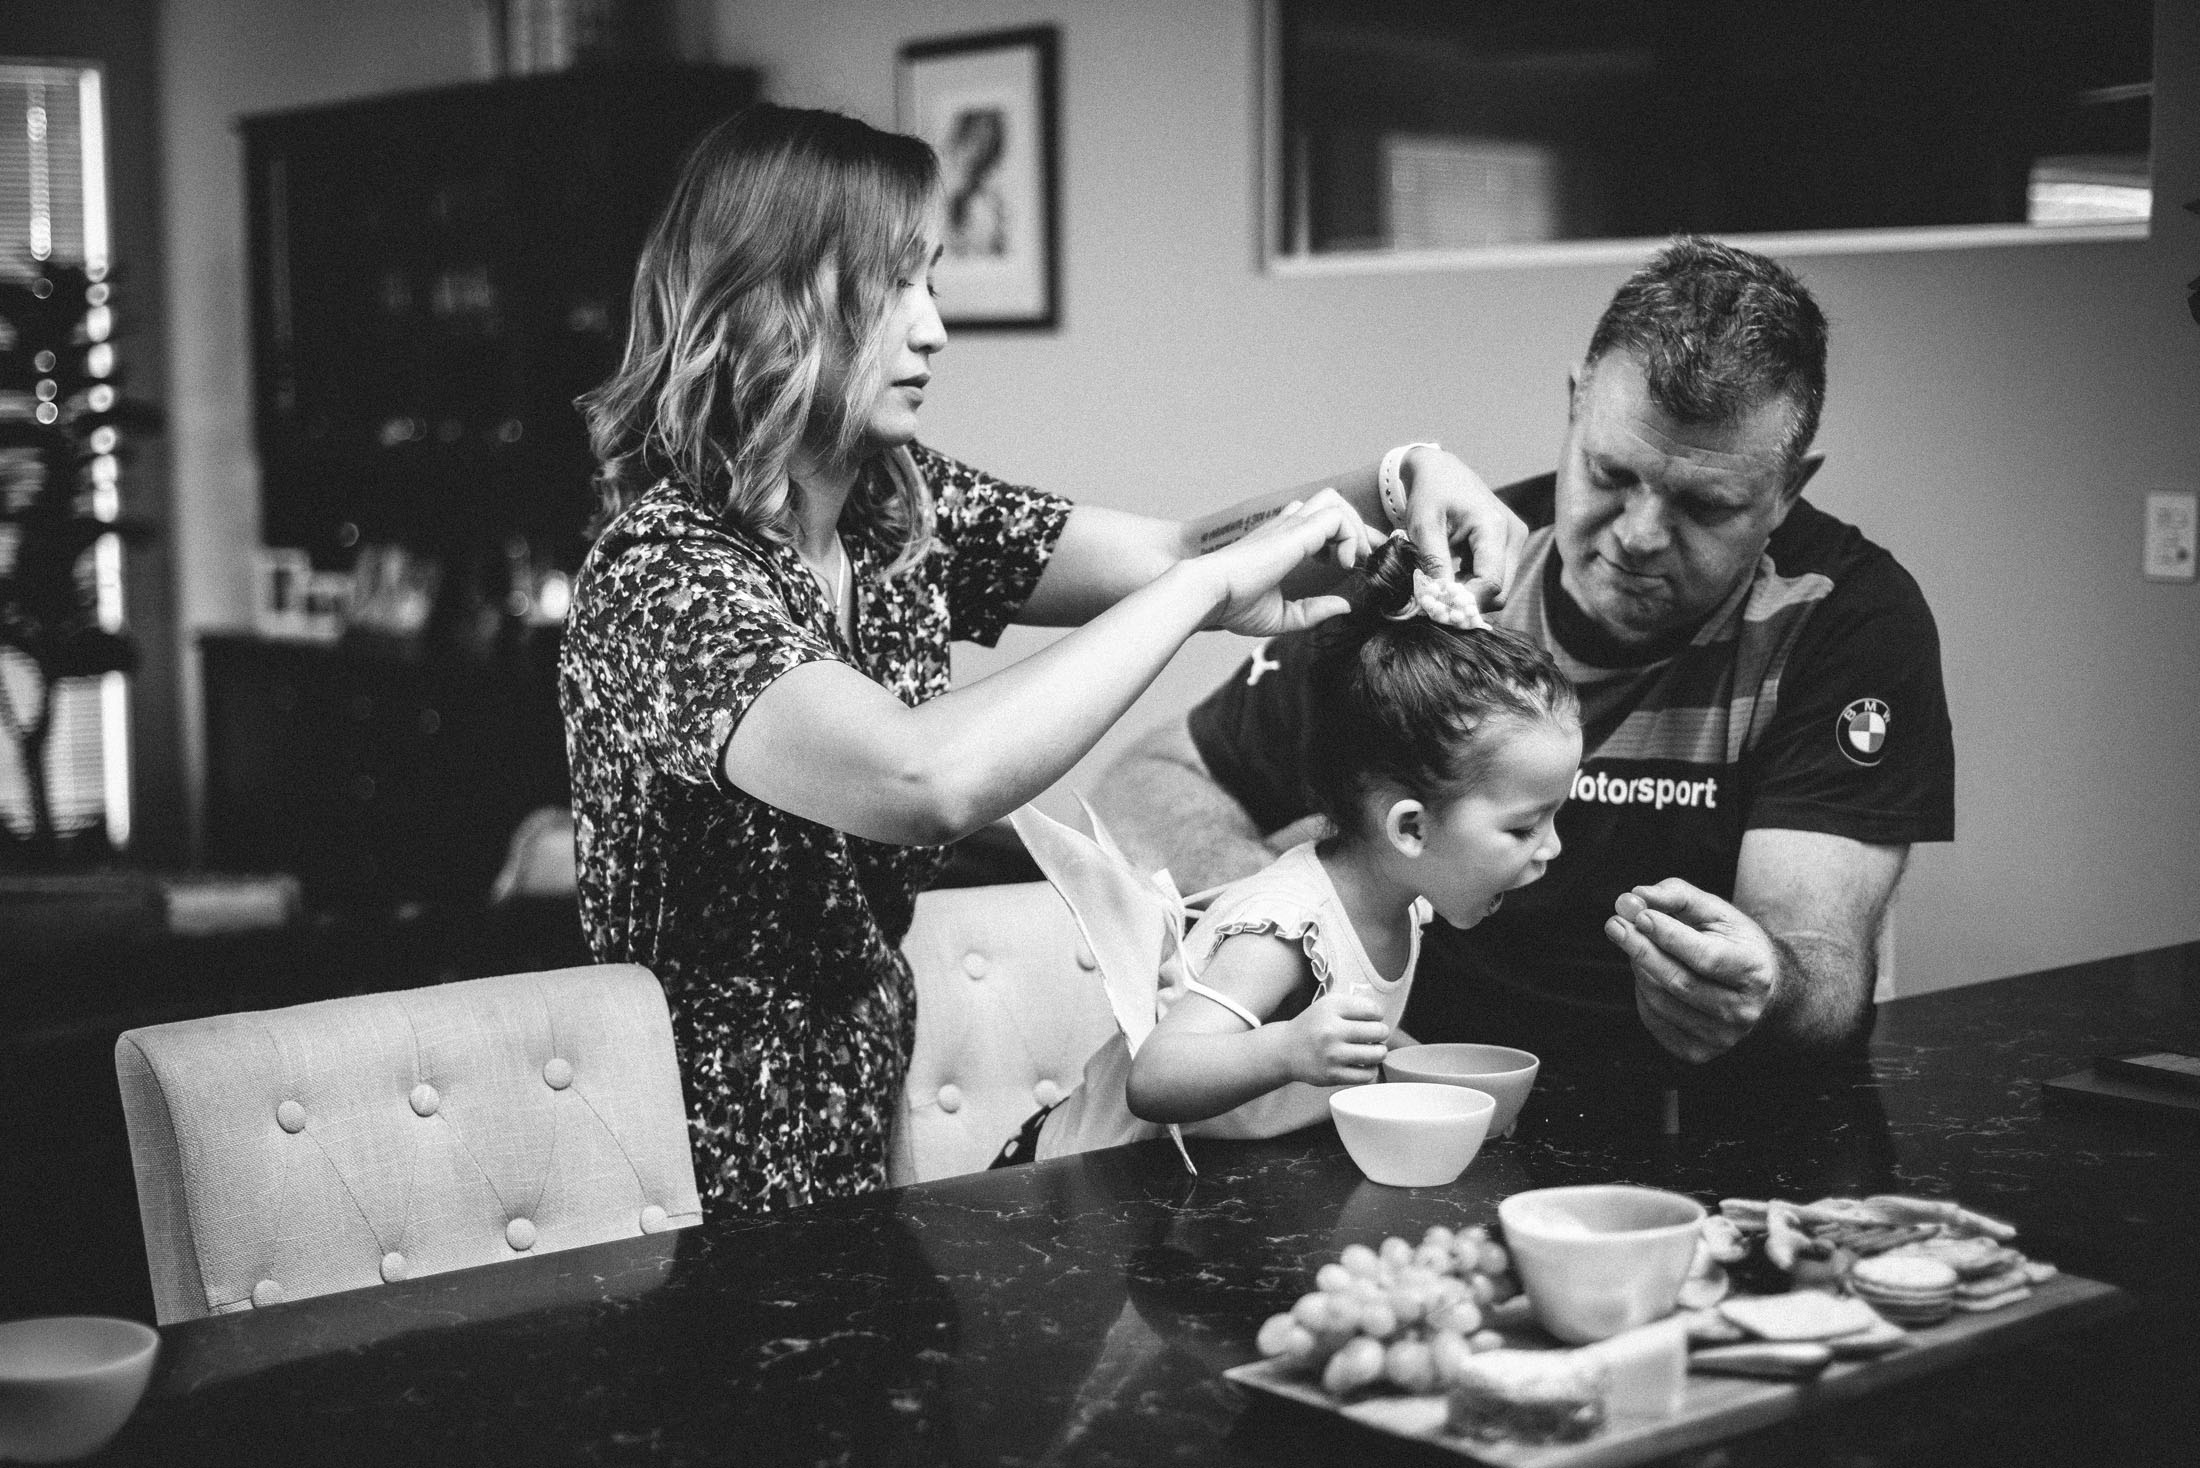 Russo_Family-Photography-unposed06.JPG